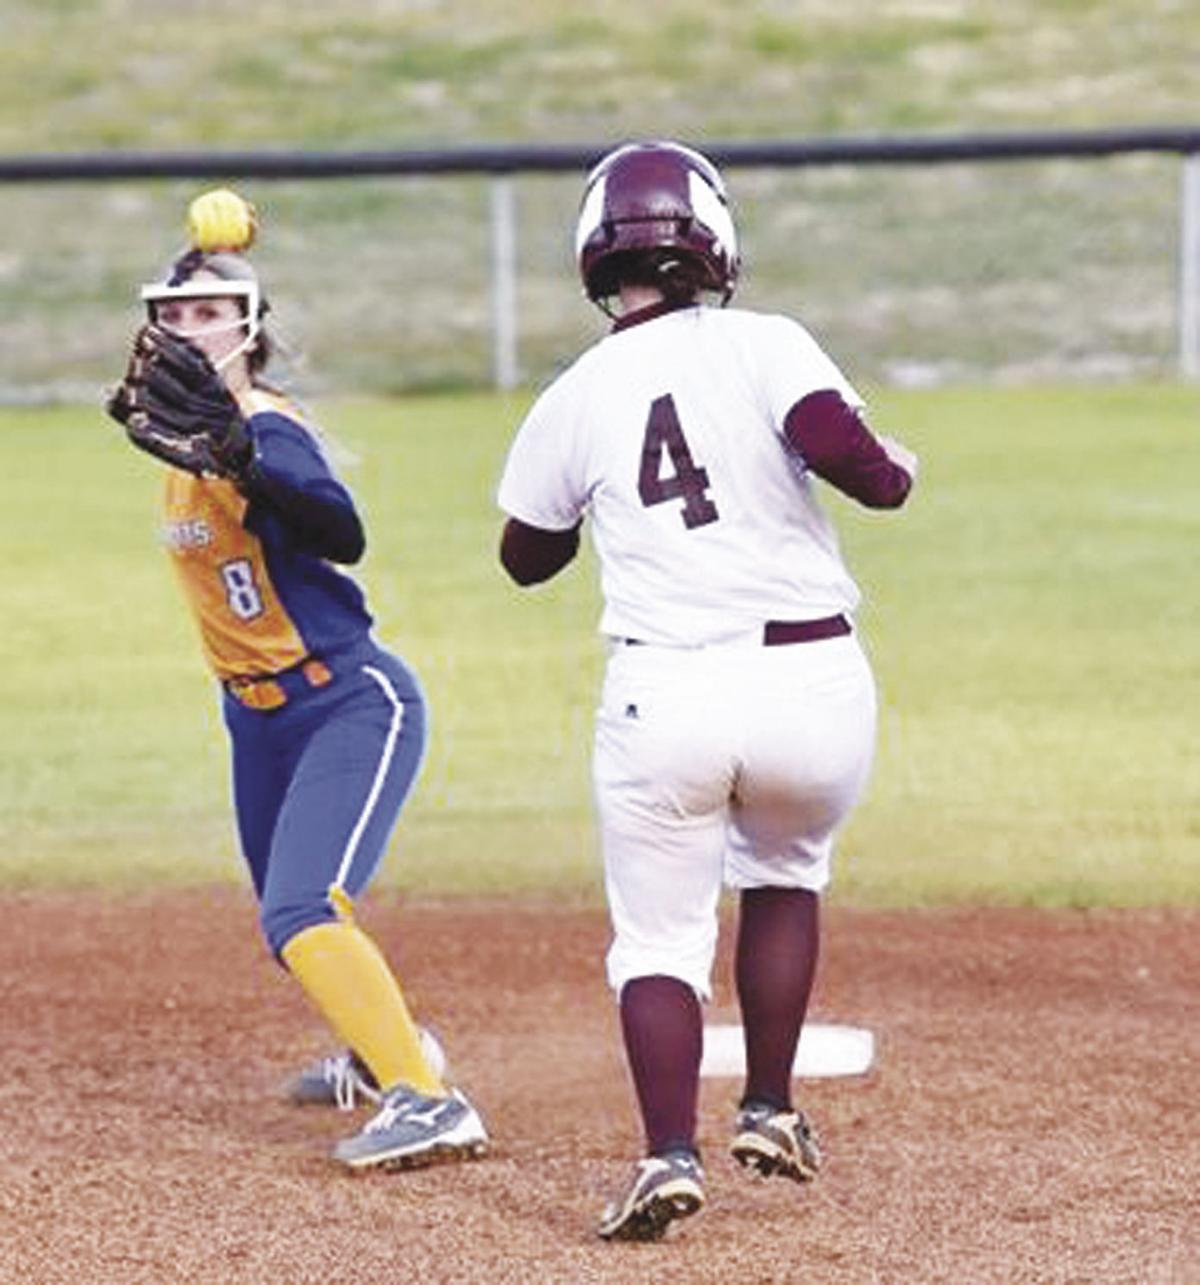 Sweetwater vs. Tellico softball